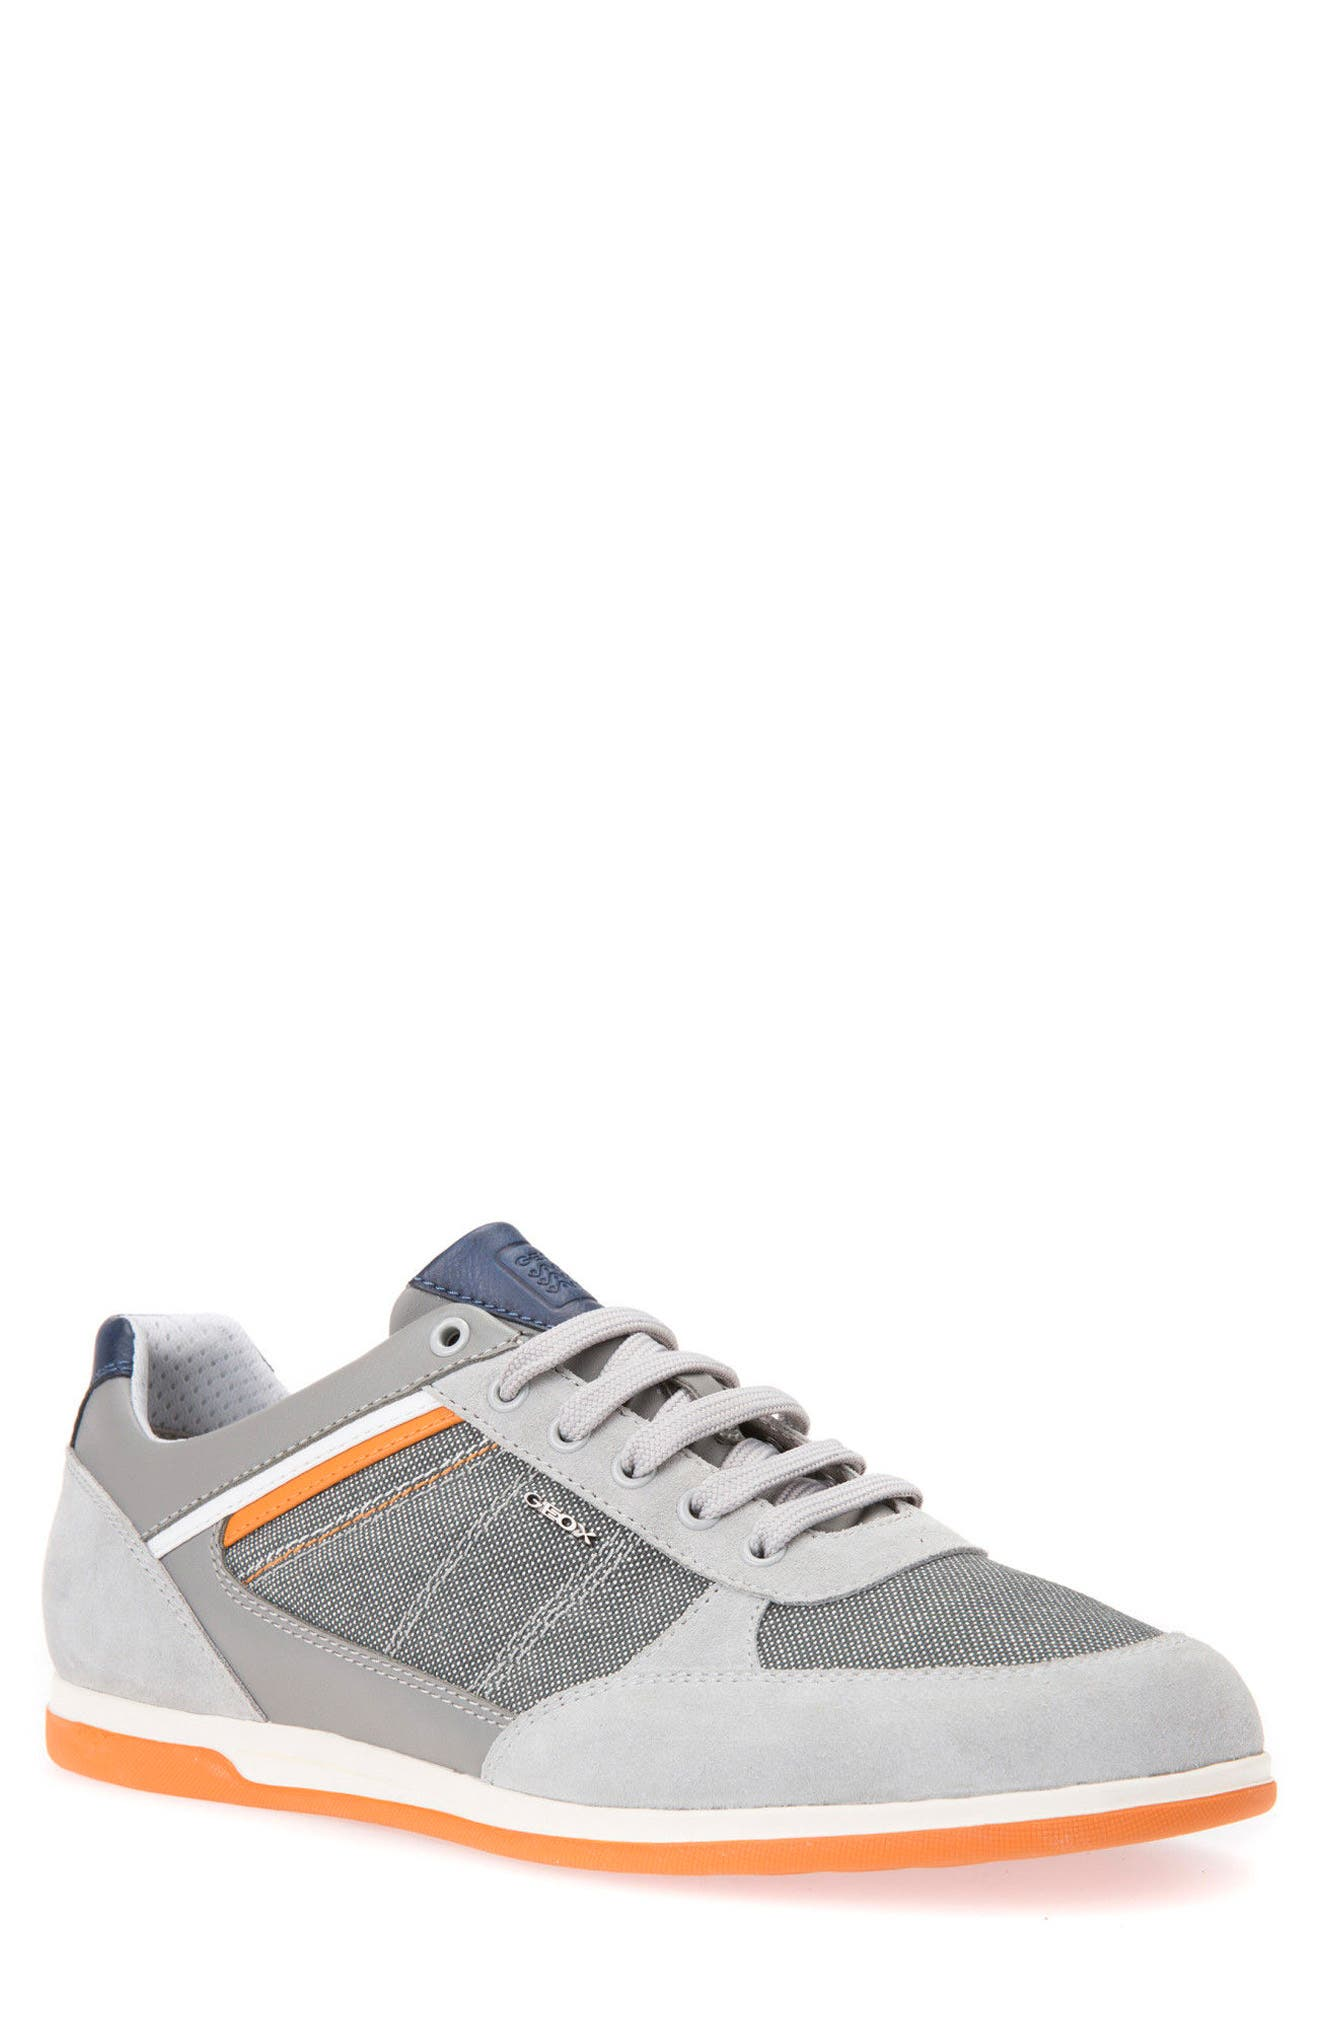 Renan 1 Low Top Sneaker,                         Main,                         color, Light Grey/ Stone